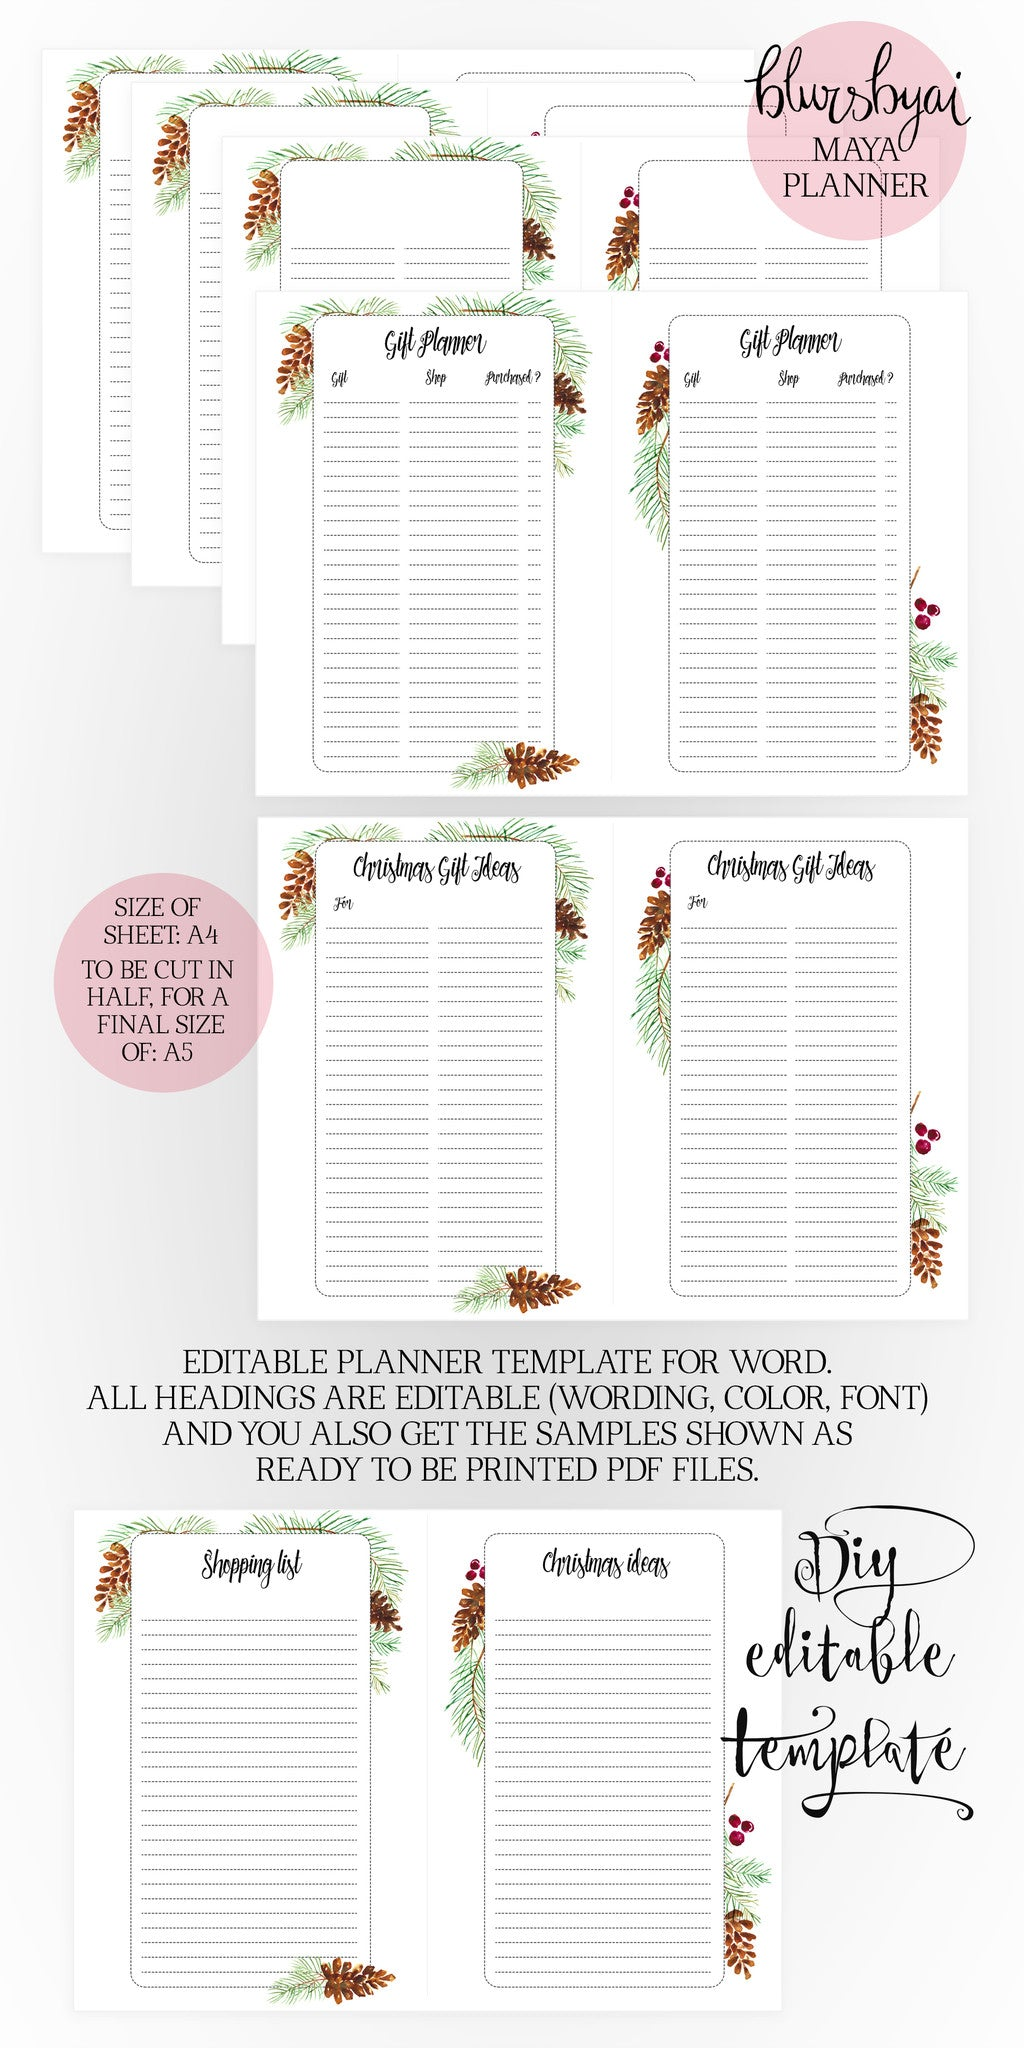 A5 Printable planner. Editable planner template for Word and ready to be printed PDFs. Winter holiday edition. The Maya planner